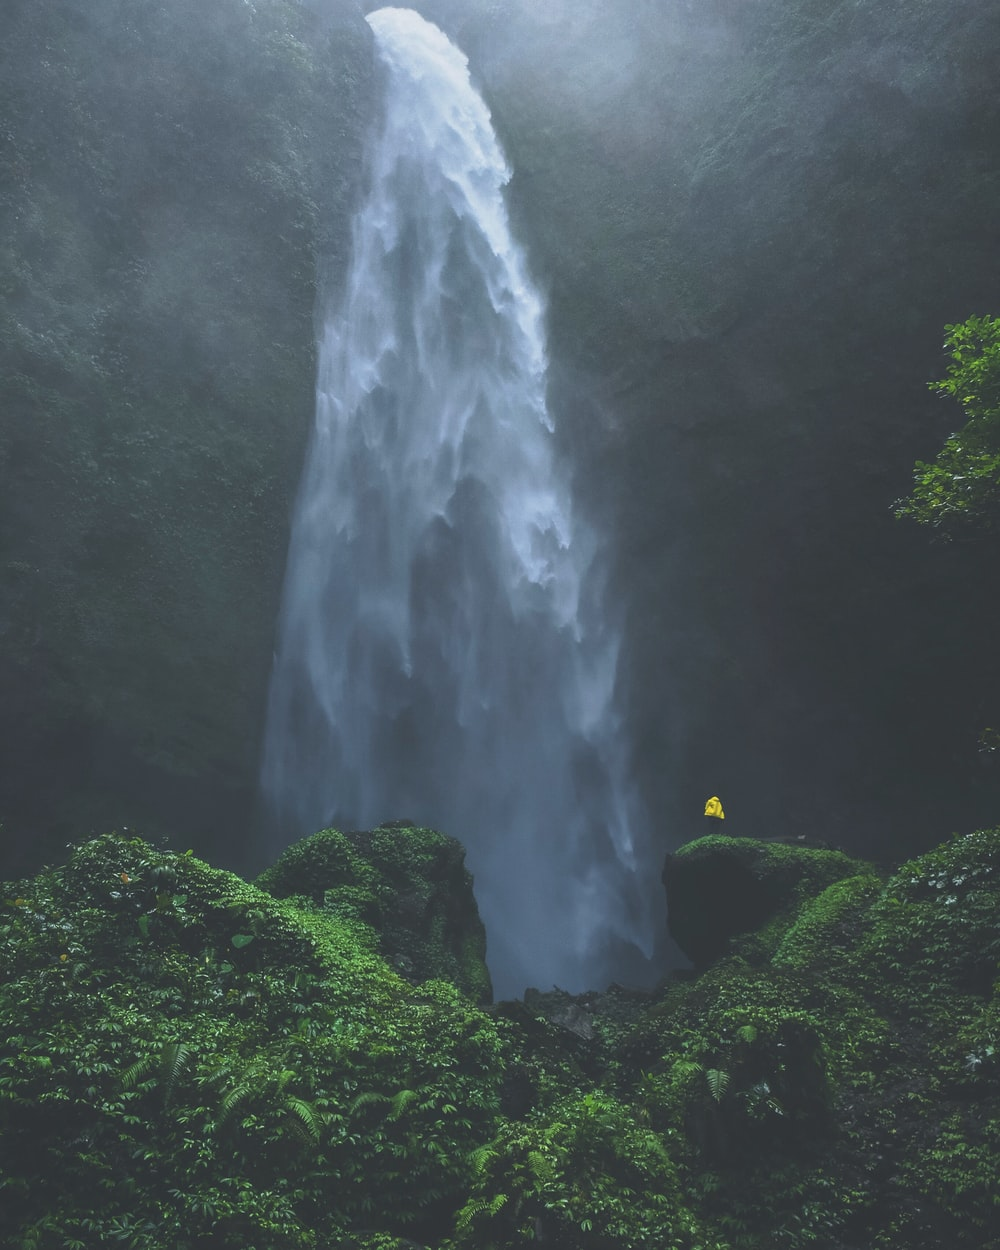 person standing in front of water falls